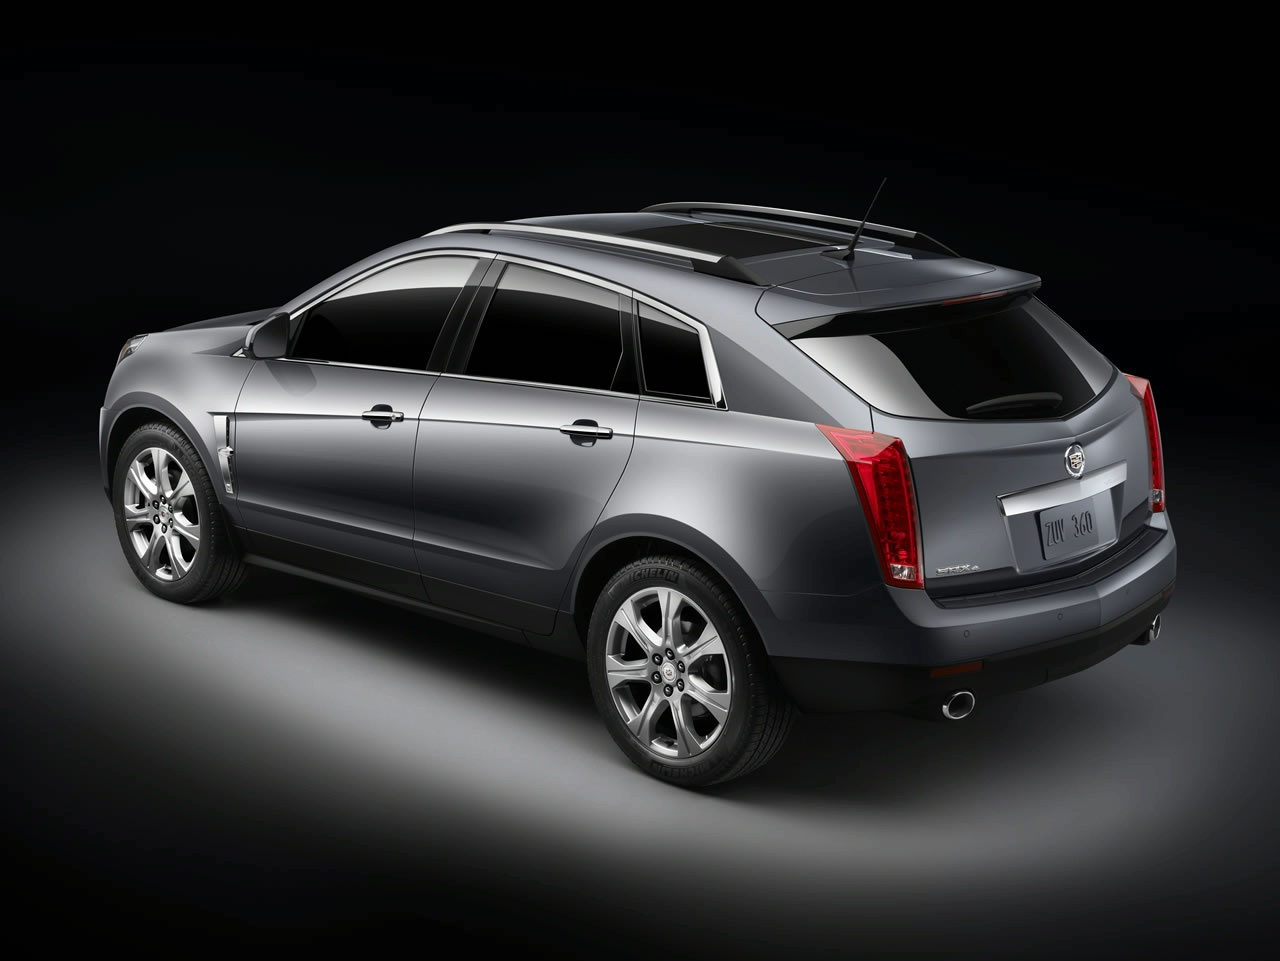 cadillac srx crossover 2010 img 2 it s your auto world new cars auto news reviews photos. Black Bedroom Furniture Sets. Home Design Ideas